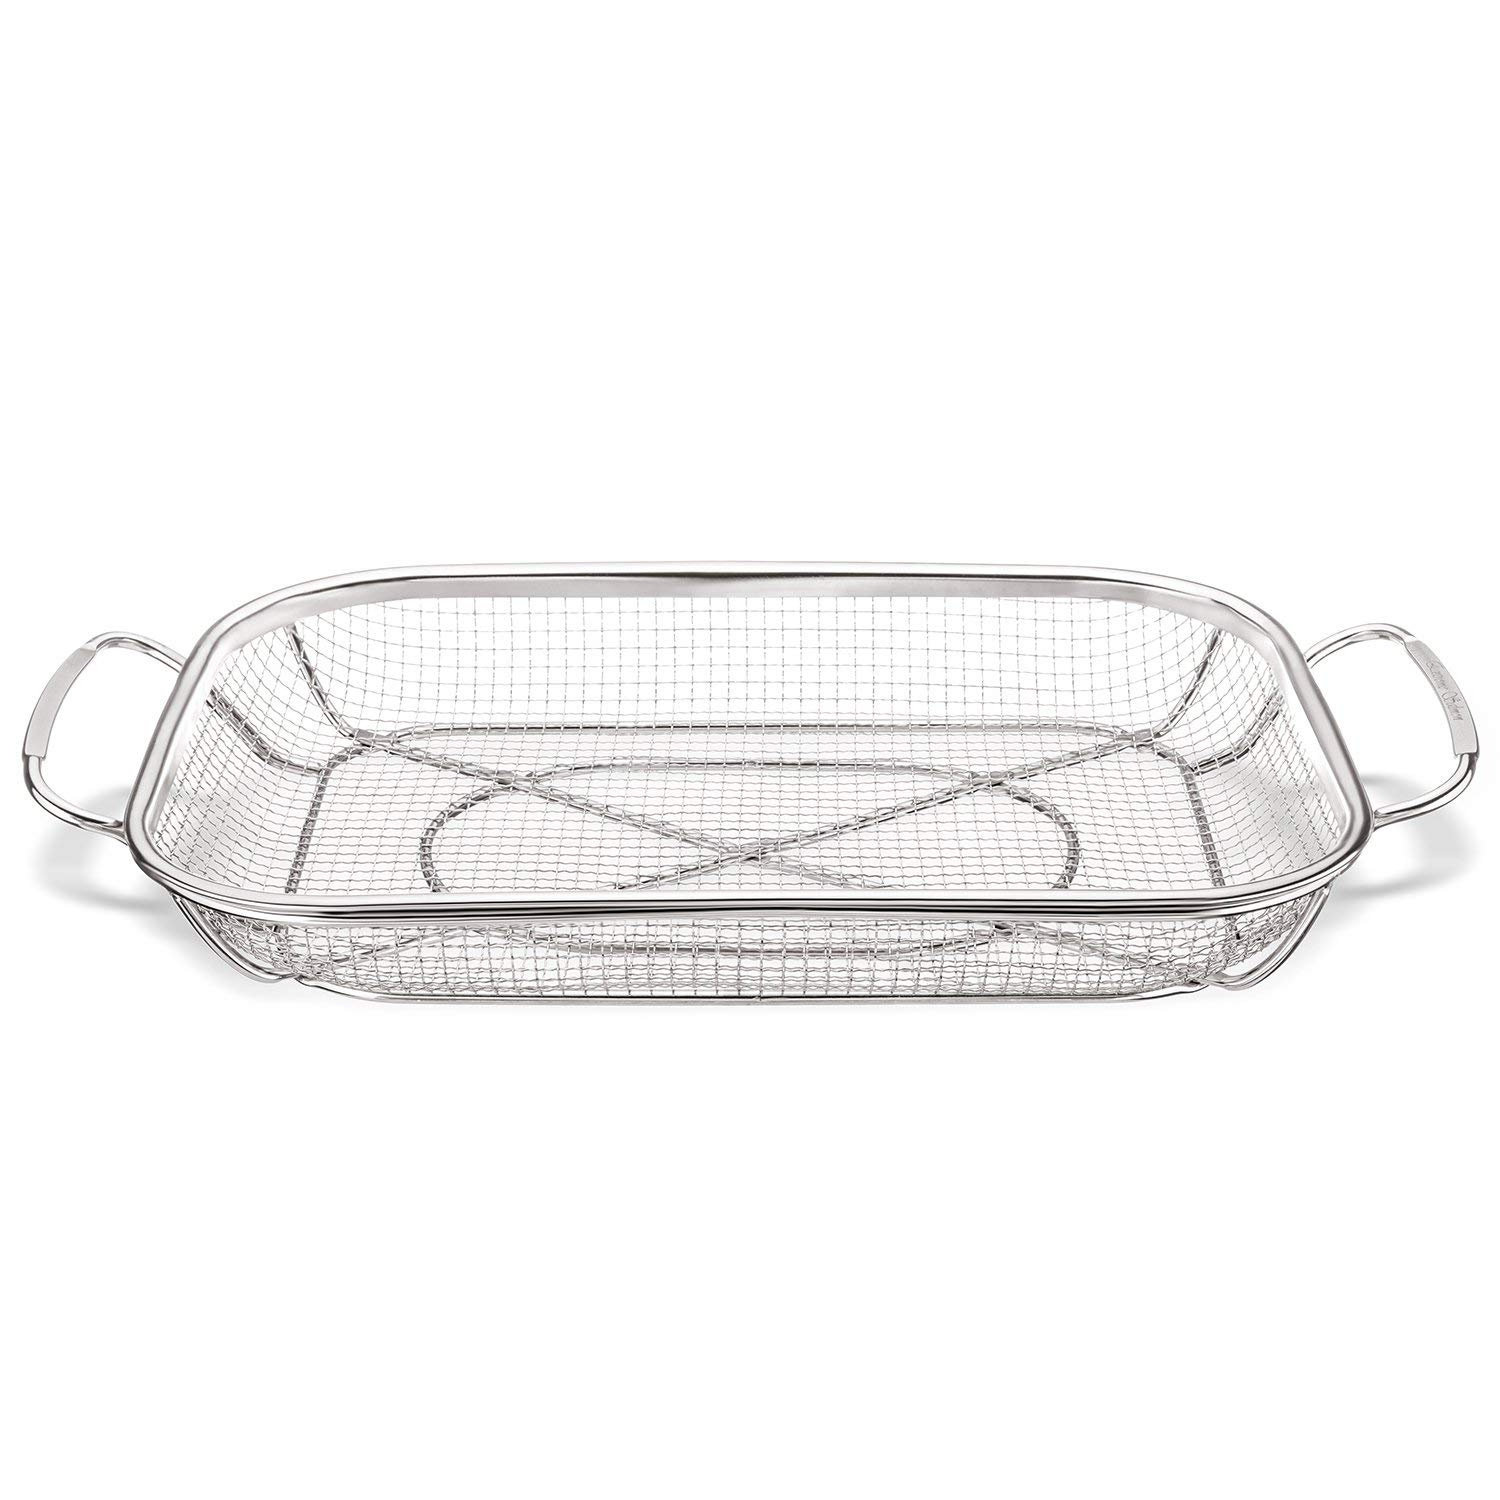 Grill Basket, Stainless Steel Grill Accessories Vegetables Grilling Basket BBQ Basket Barbecue Veggies Charcoal Grilling Topper Cookware for Outdoor Grill by Extreme Salmon